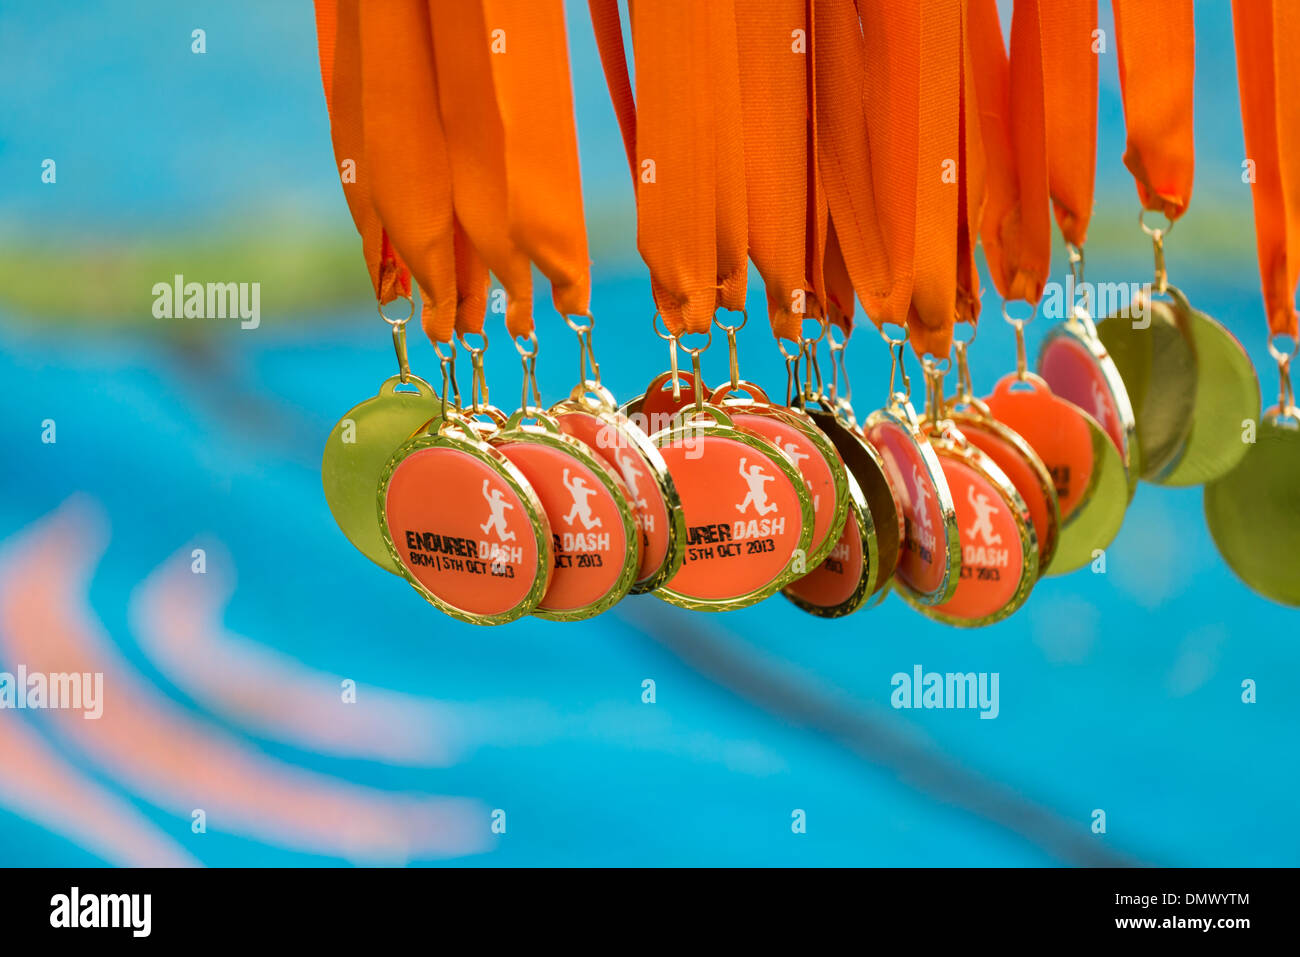 Row of bright orange and gold medal with orange ribbons for Stock